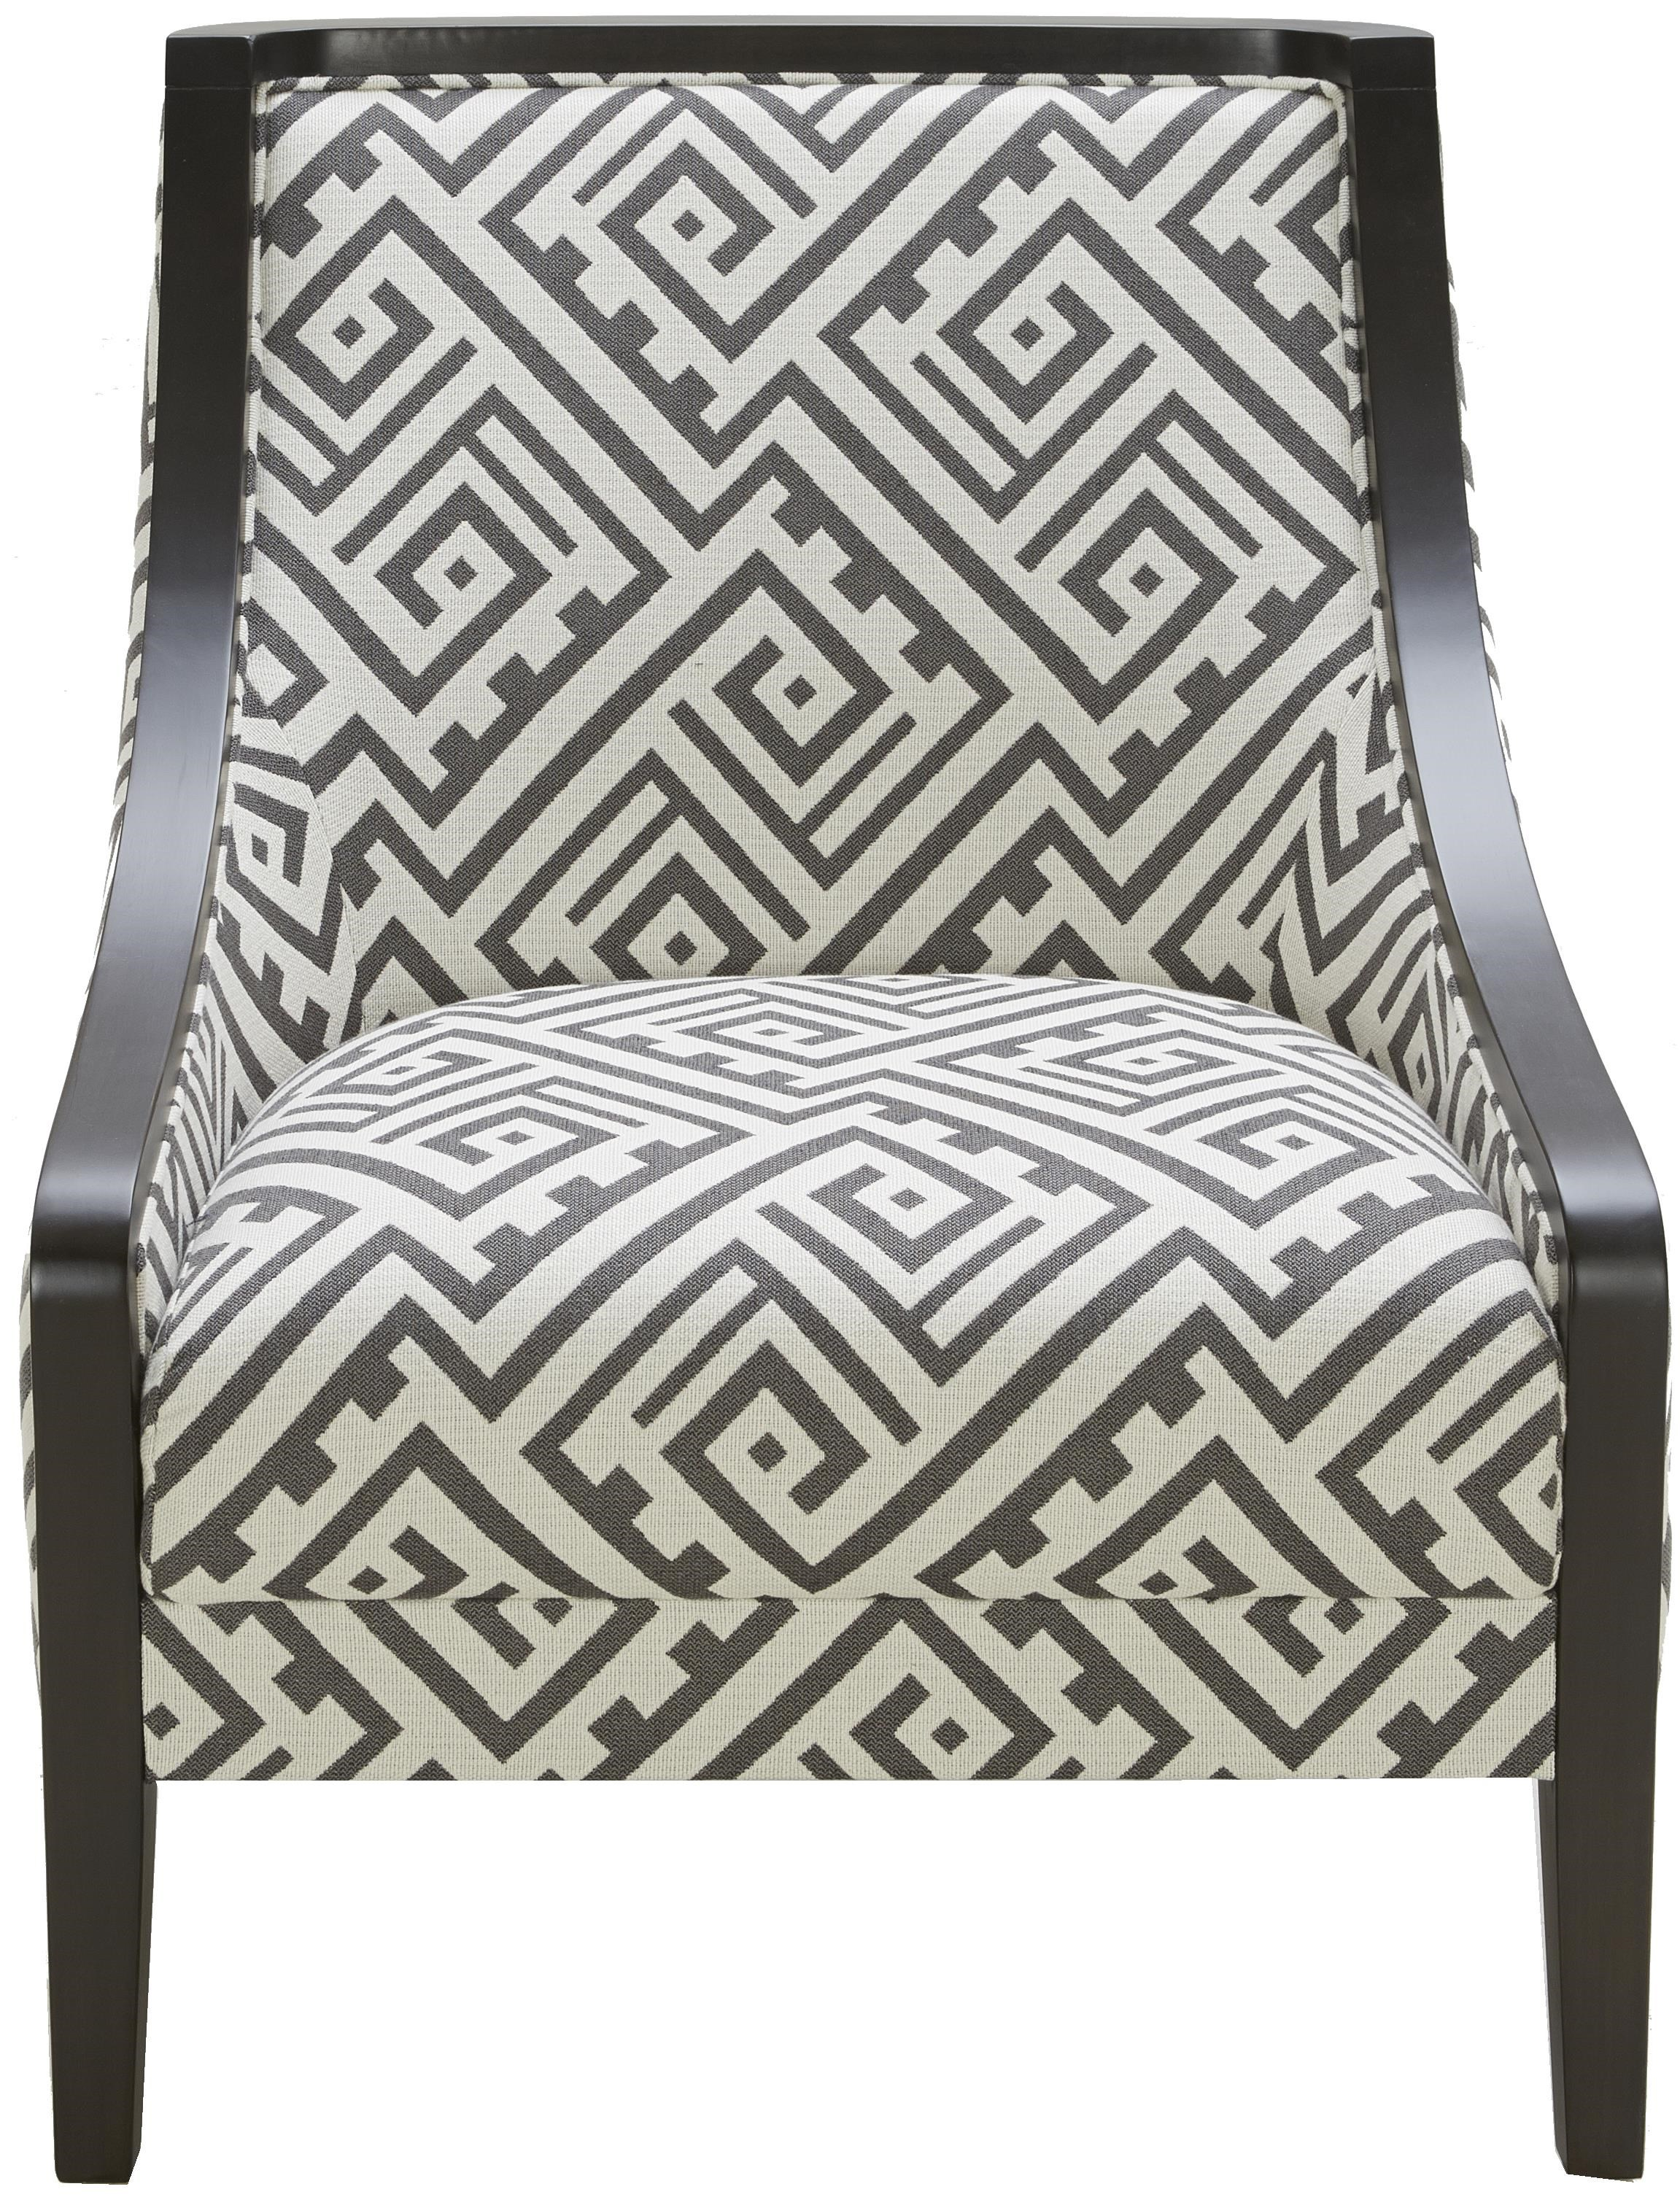 Urban Evolution Wood TrimTraditional Accent Chair ...